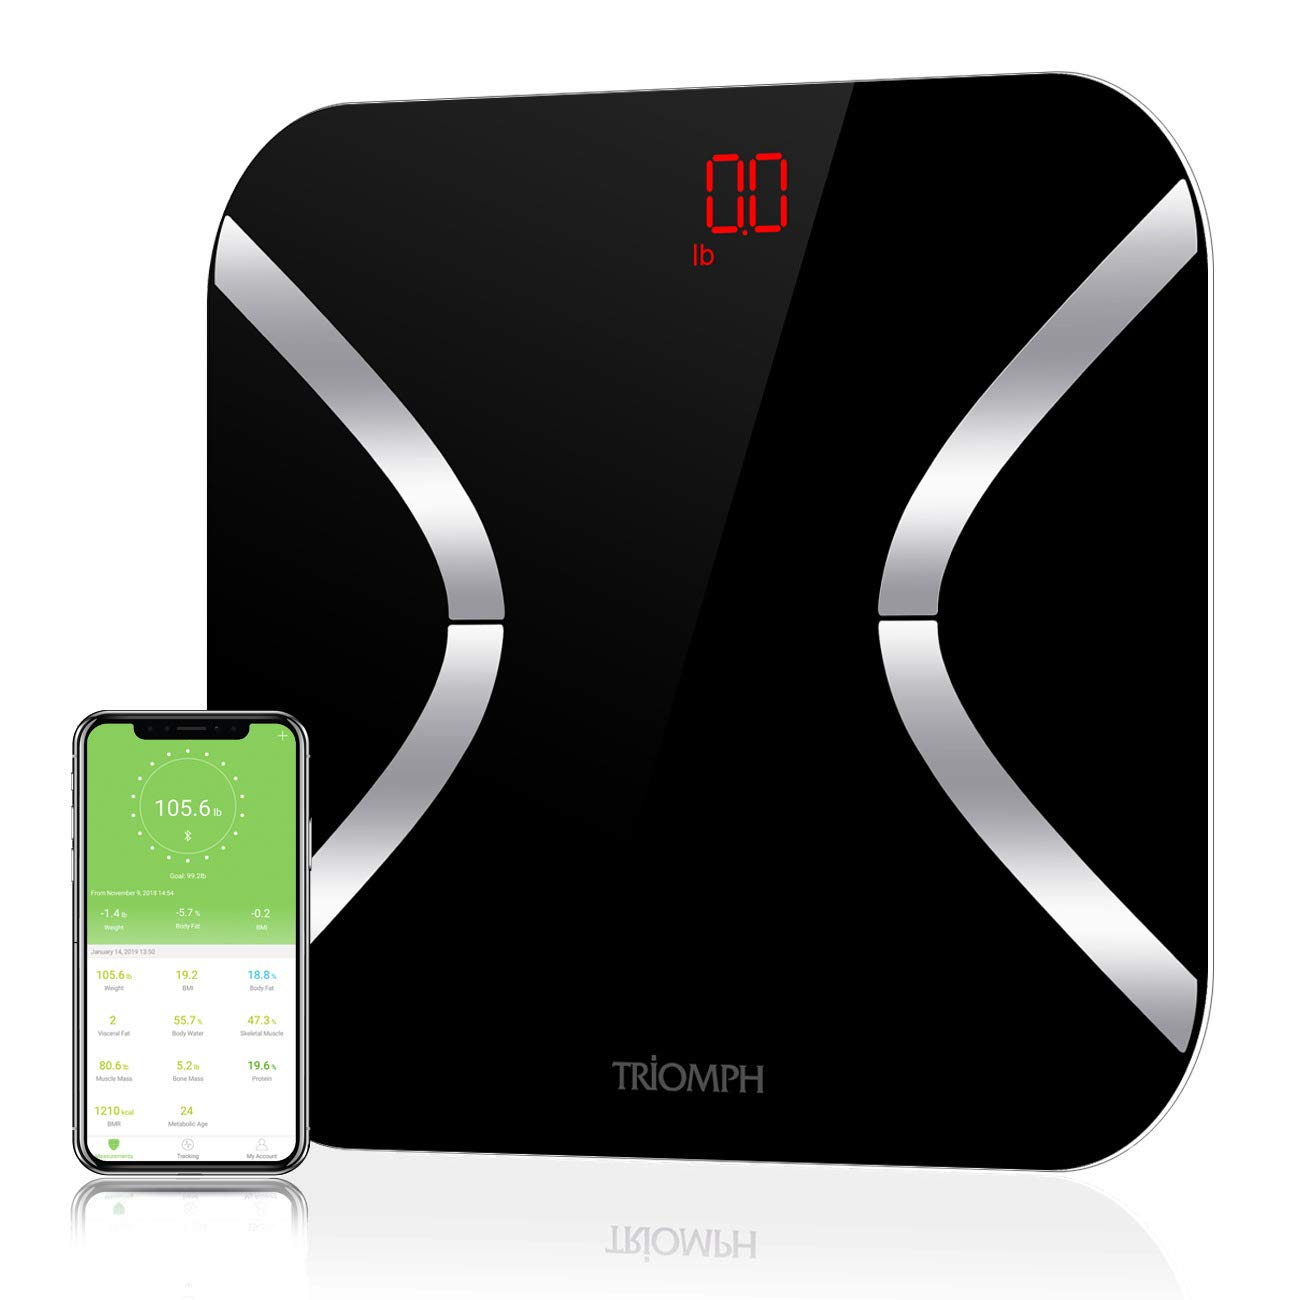 Triomph Bluetooth Body Fat Scale, Smart Wireless Digital Bathroom Weight Scale Body Composition Monitor with iOS Android APP for Body Weight, Fat, Water, BMI, BMR, Muscle Mass, Black